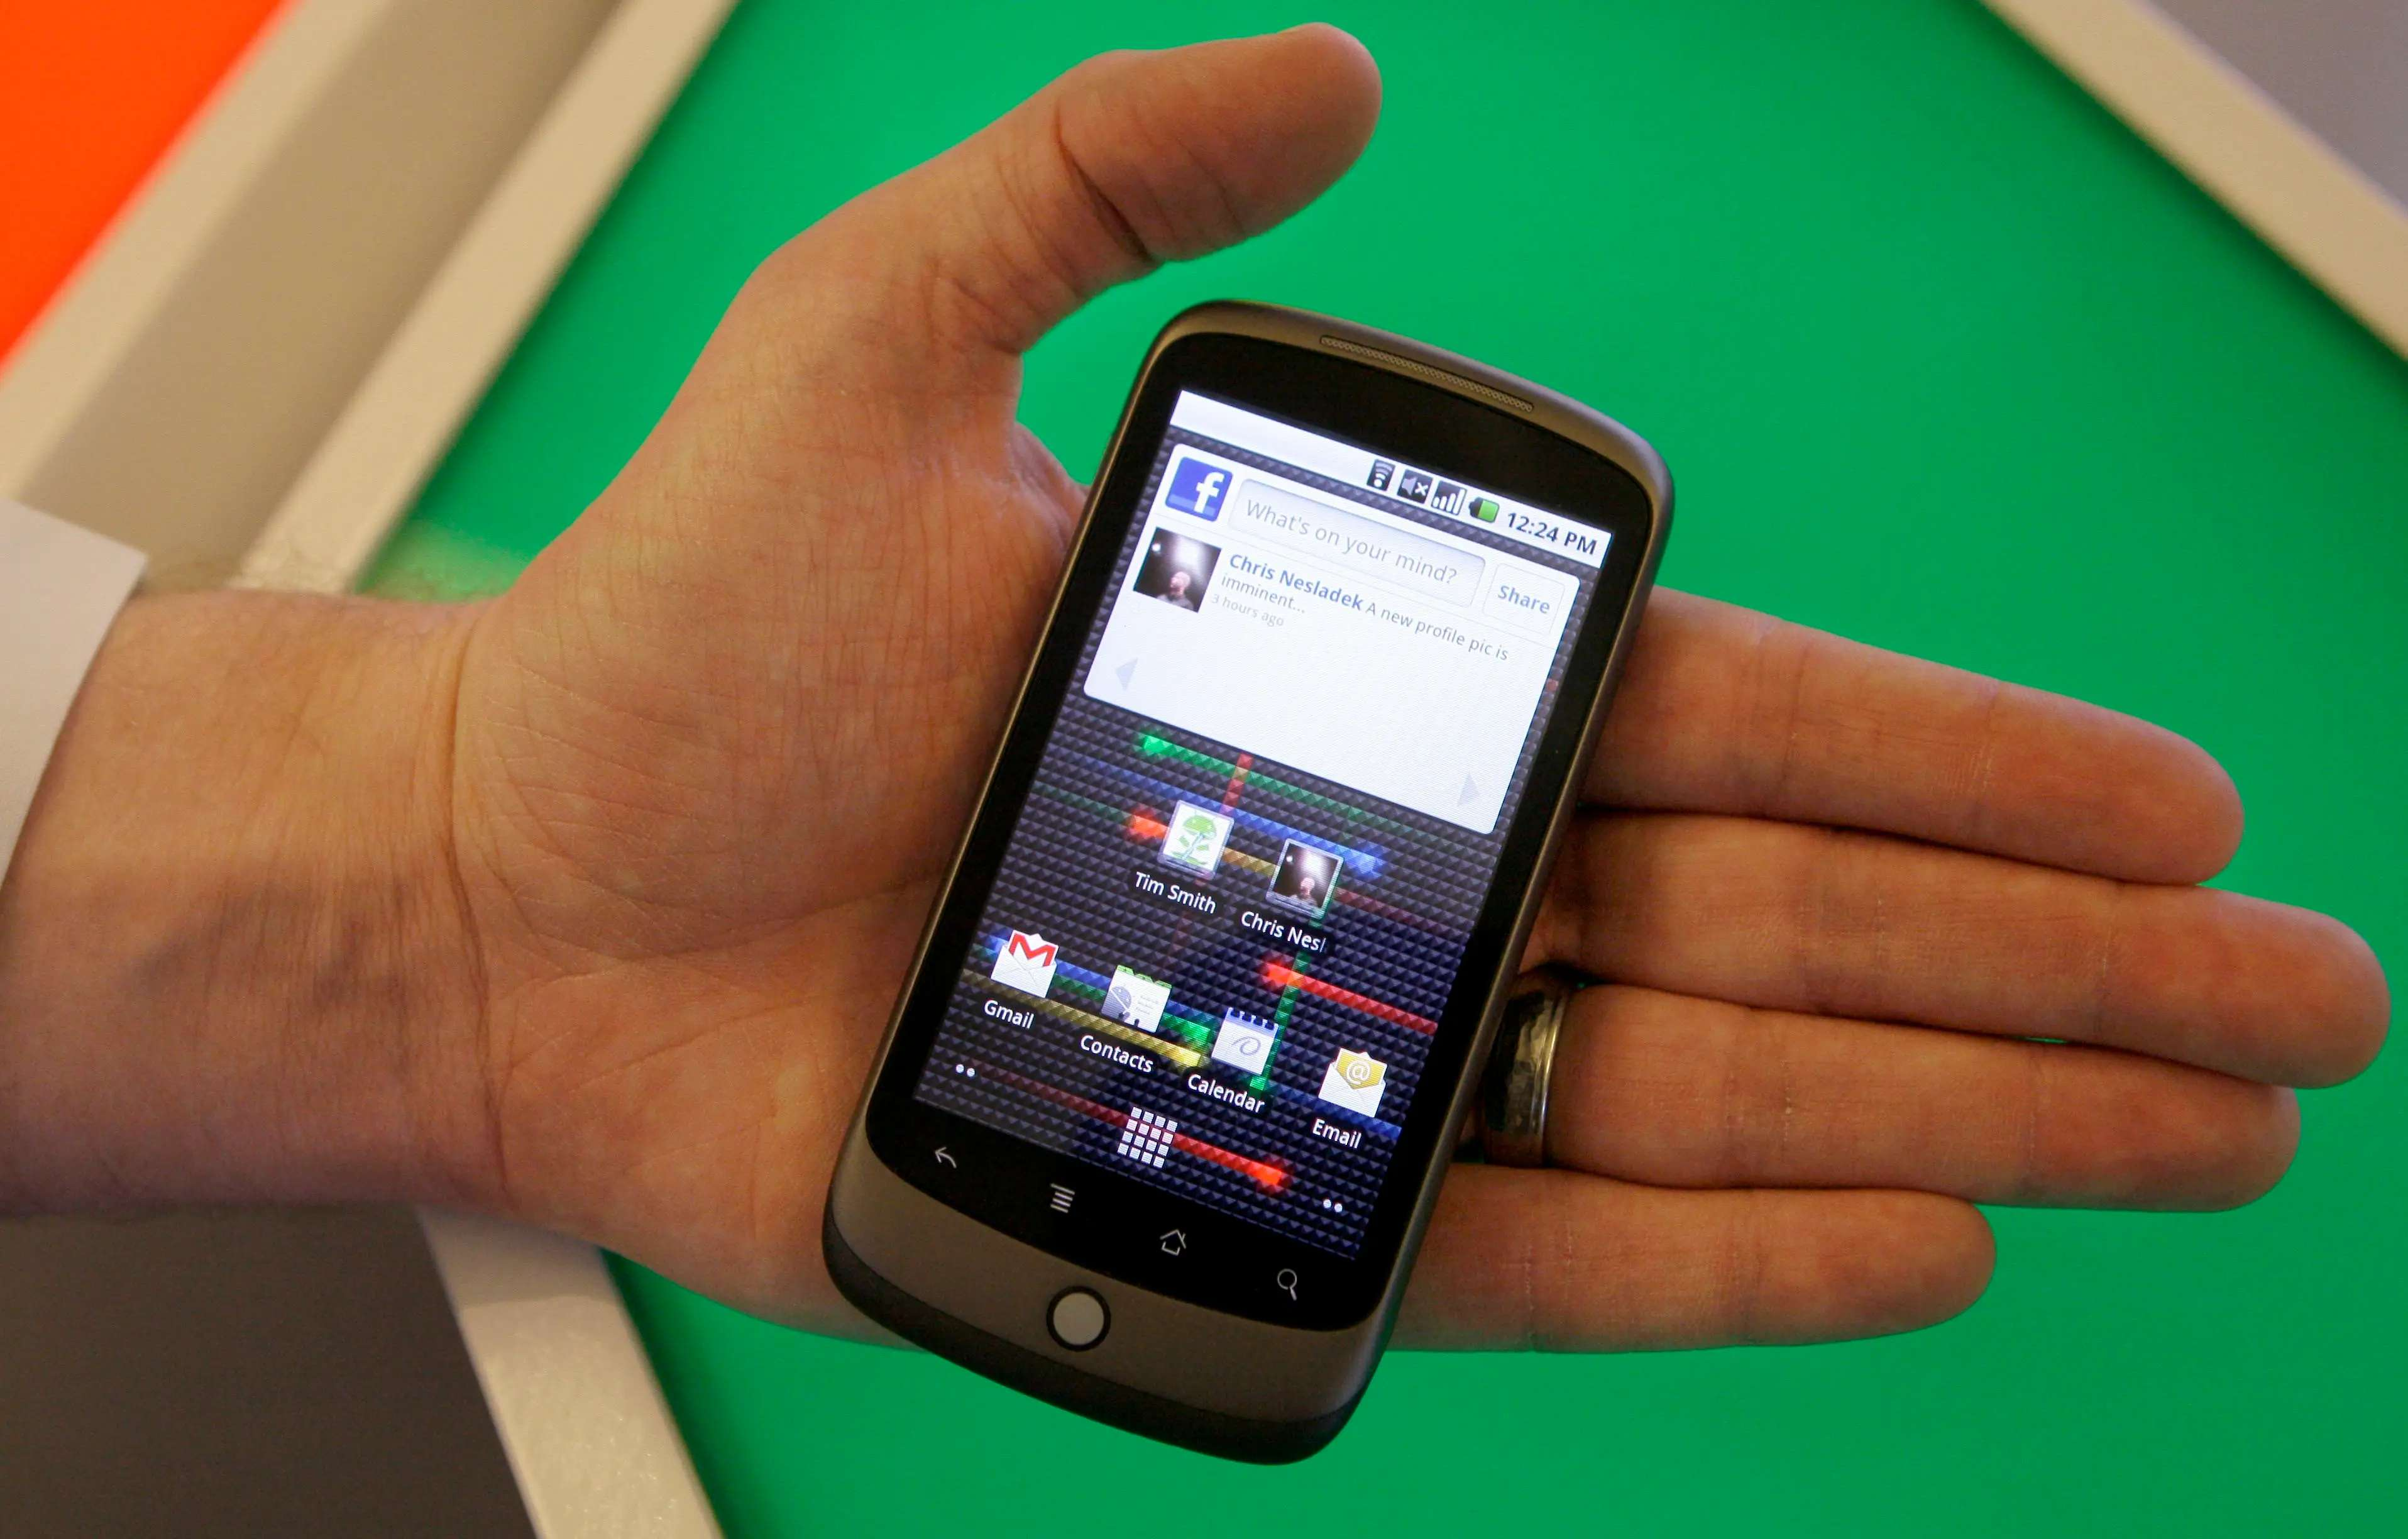 Unfortunately, the Nexus One turned out to be a dud with customers and Google discontinued the product in July 2010.